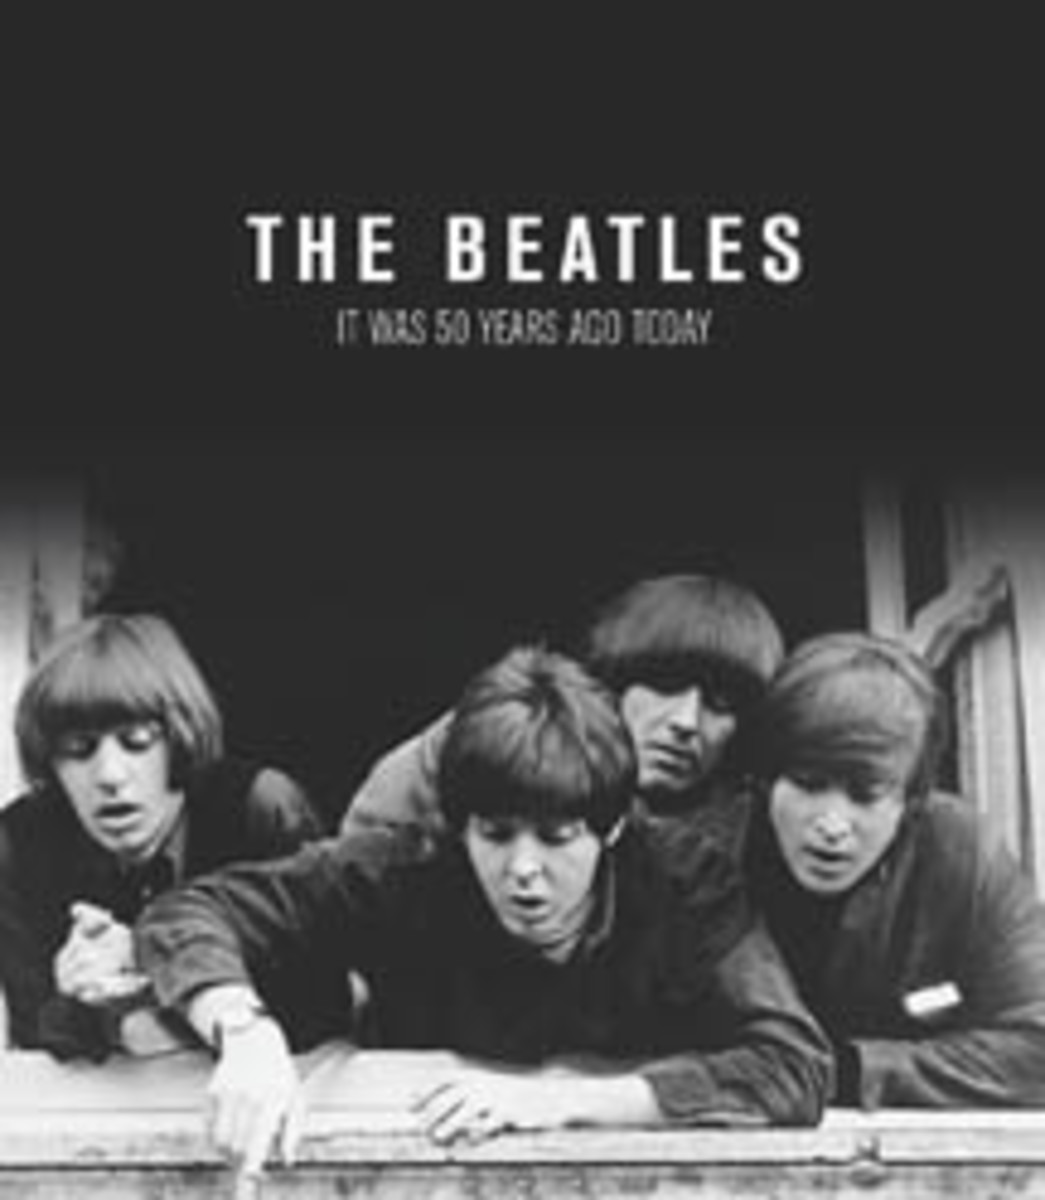 The Beatles It Was Fifty Years Ago Today